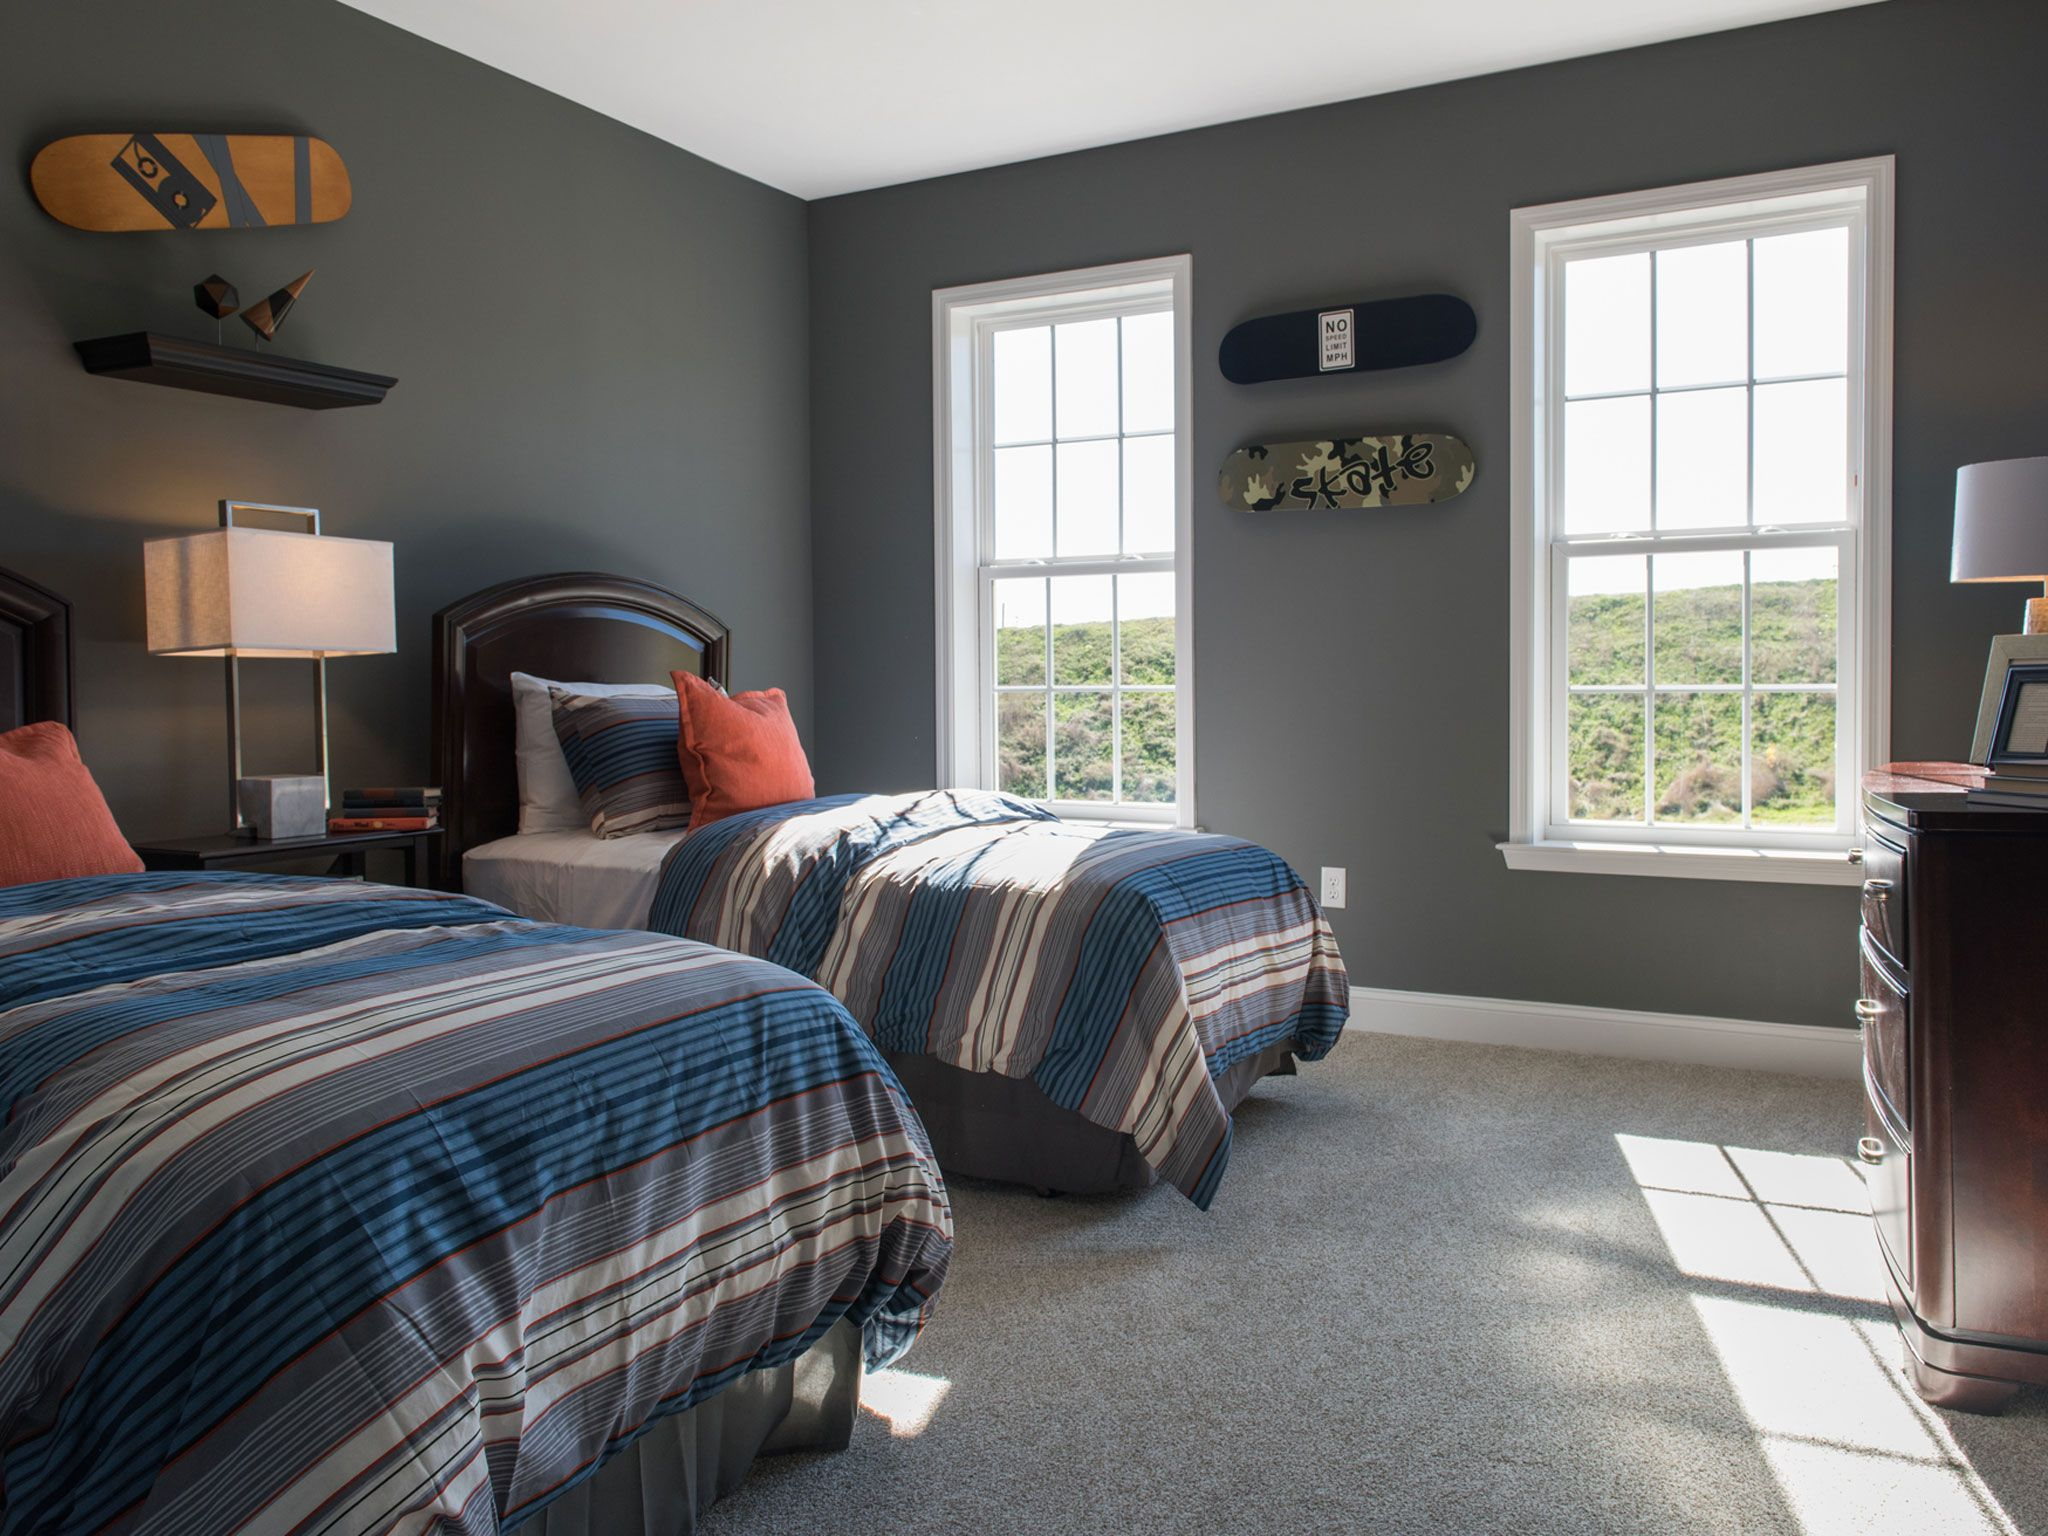 Bedroom featured in the Drummond By Charter Homes & Neighborhoods  in Pittsburgh, PA